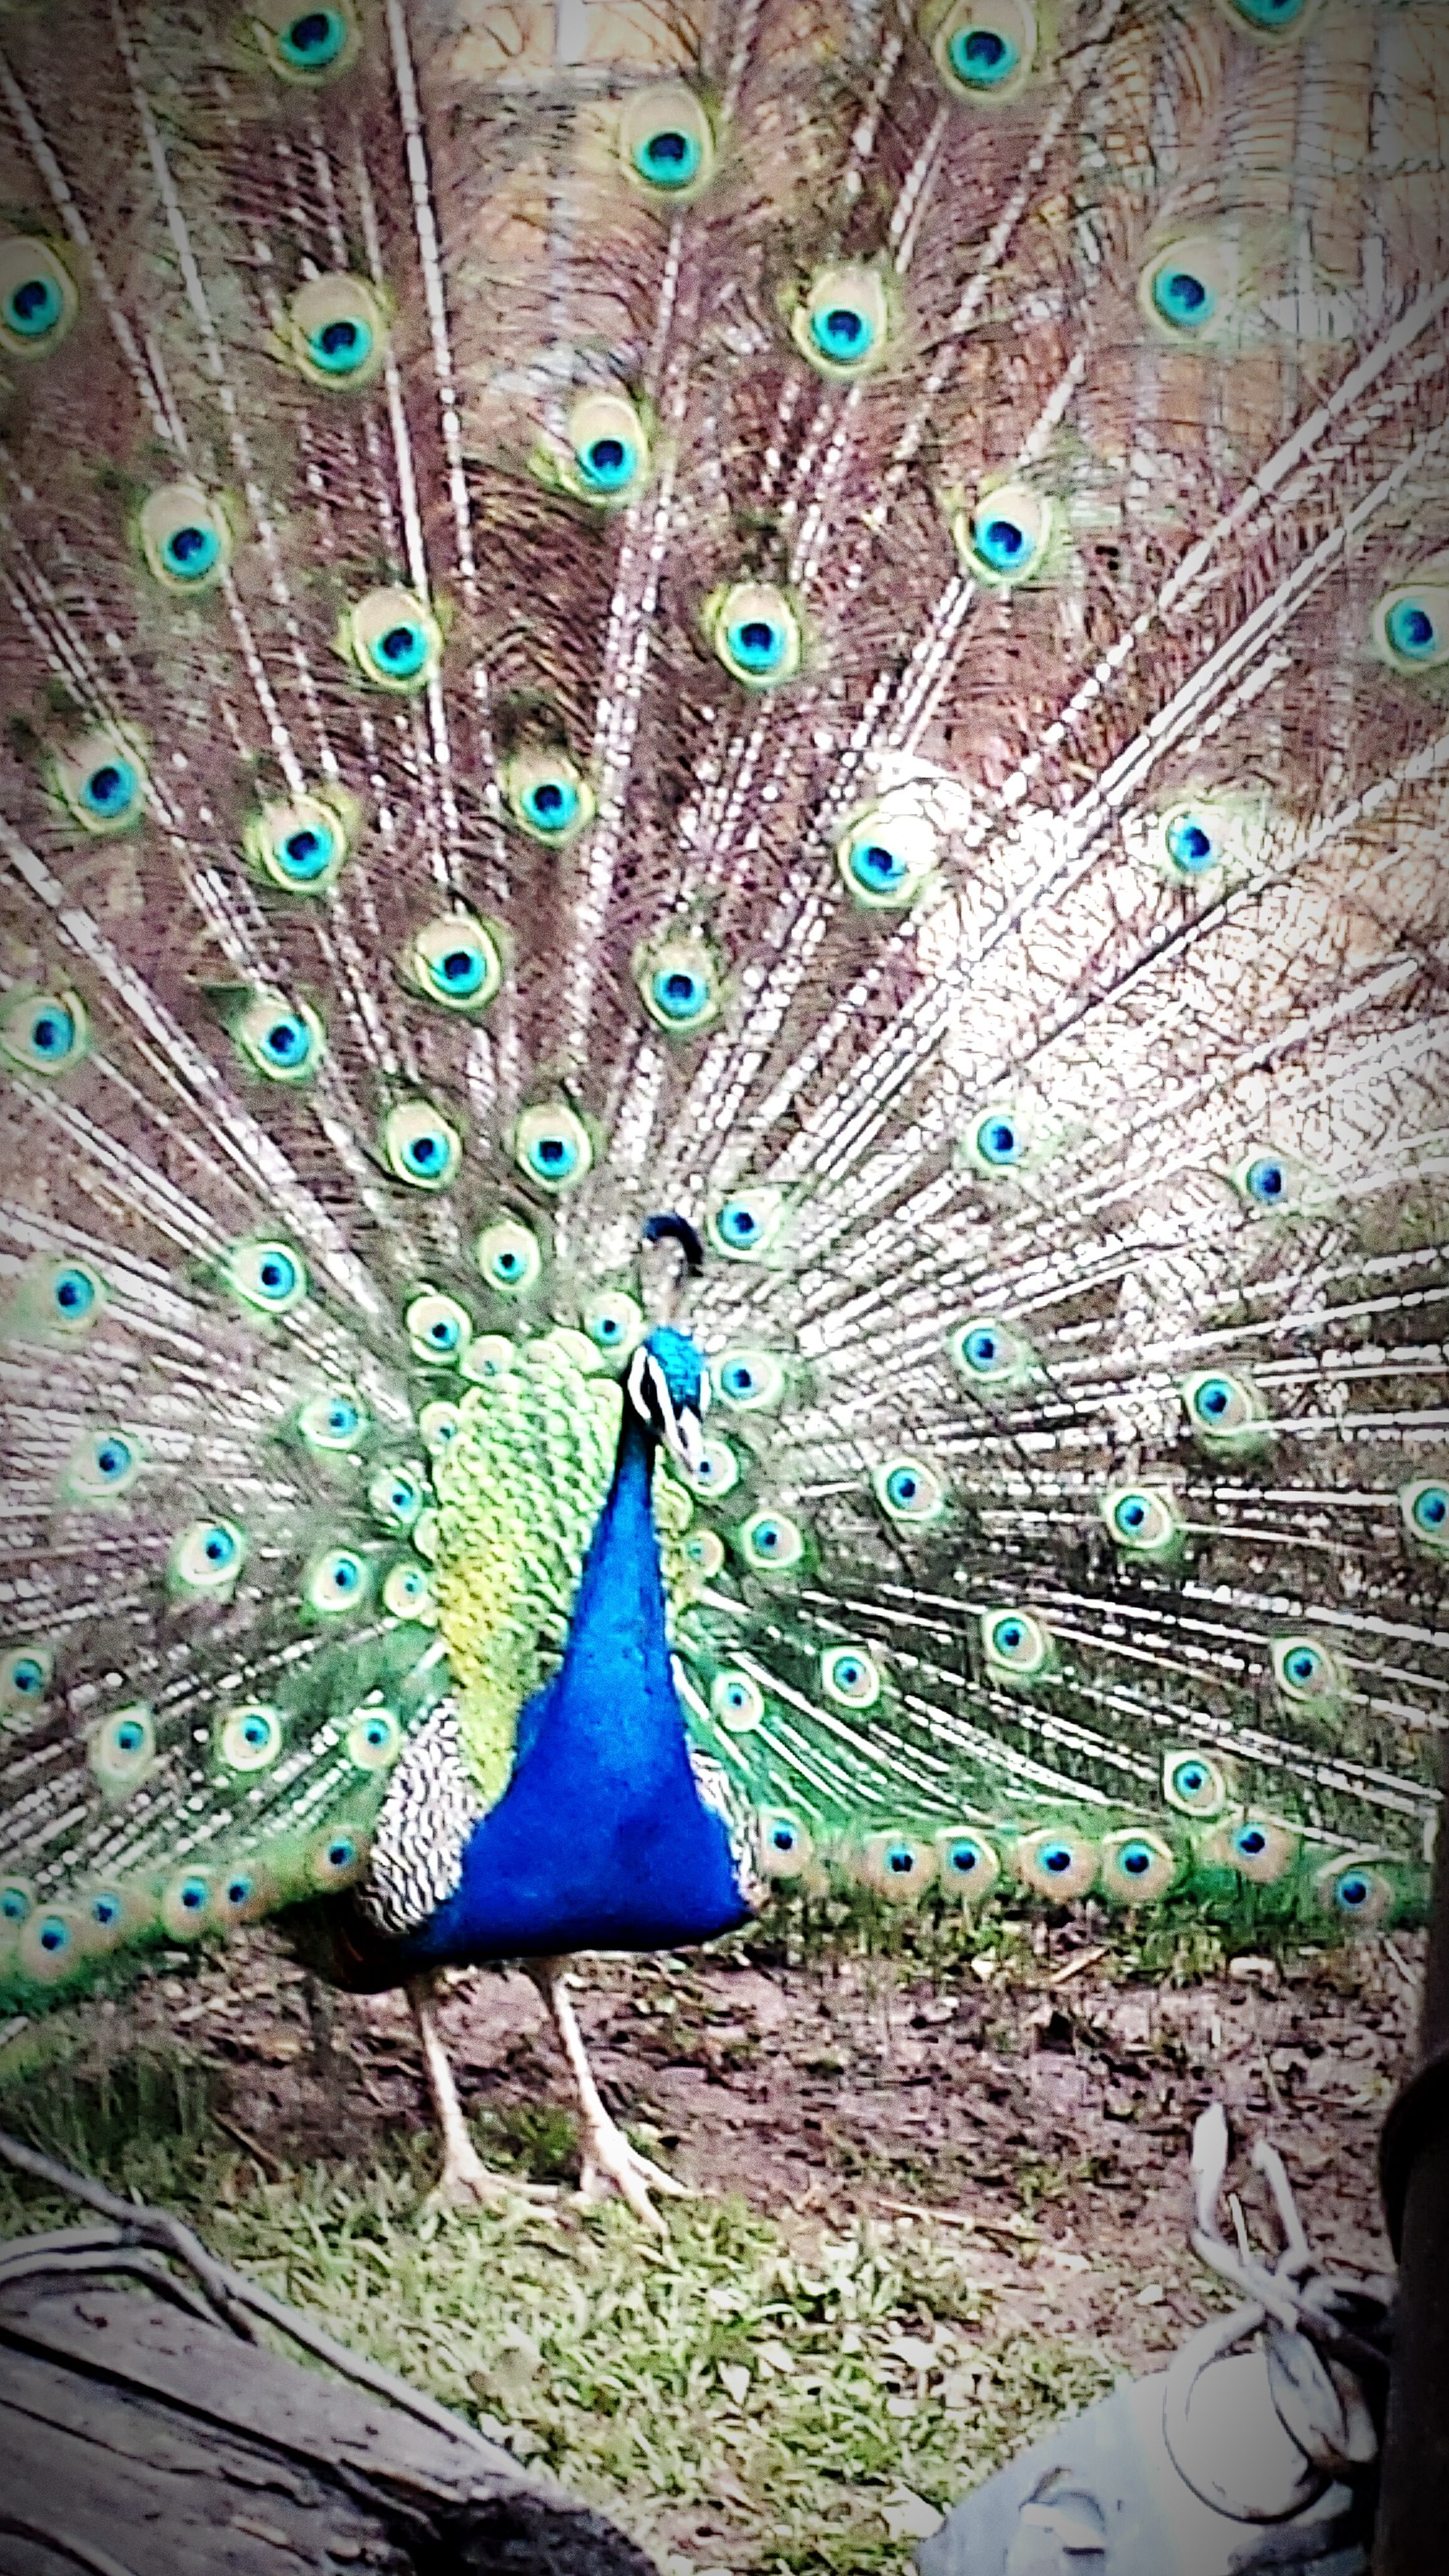 peacock, animal themes, one animal, feather, fanned out, multi colored, pattern, close-up, natural pattern, peacock feather, blue, wildlife, backgrounds, full frame, outdoors, purple, day, nature, bird, no people